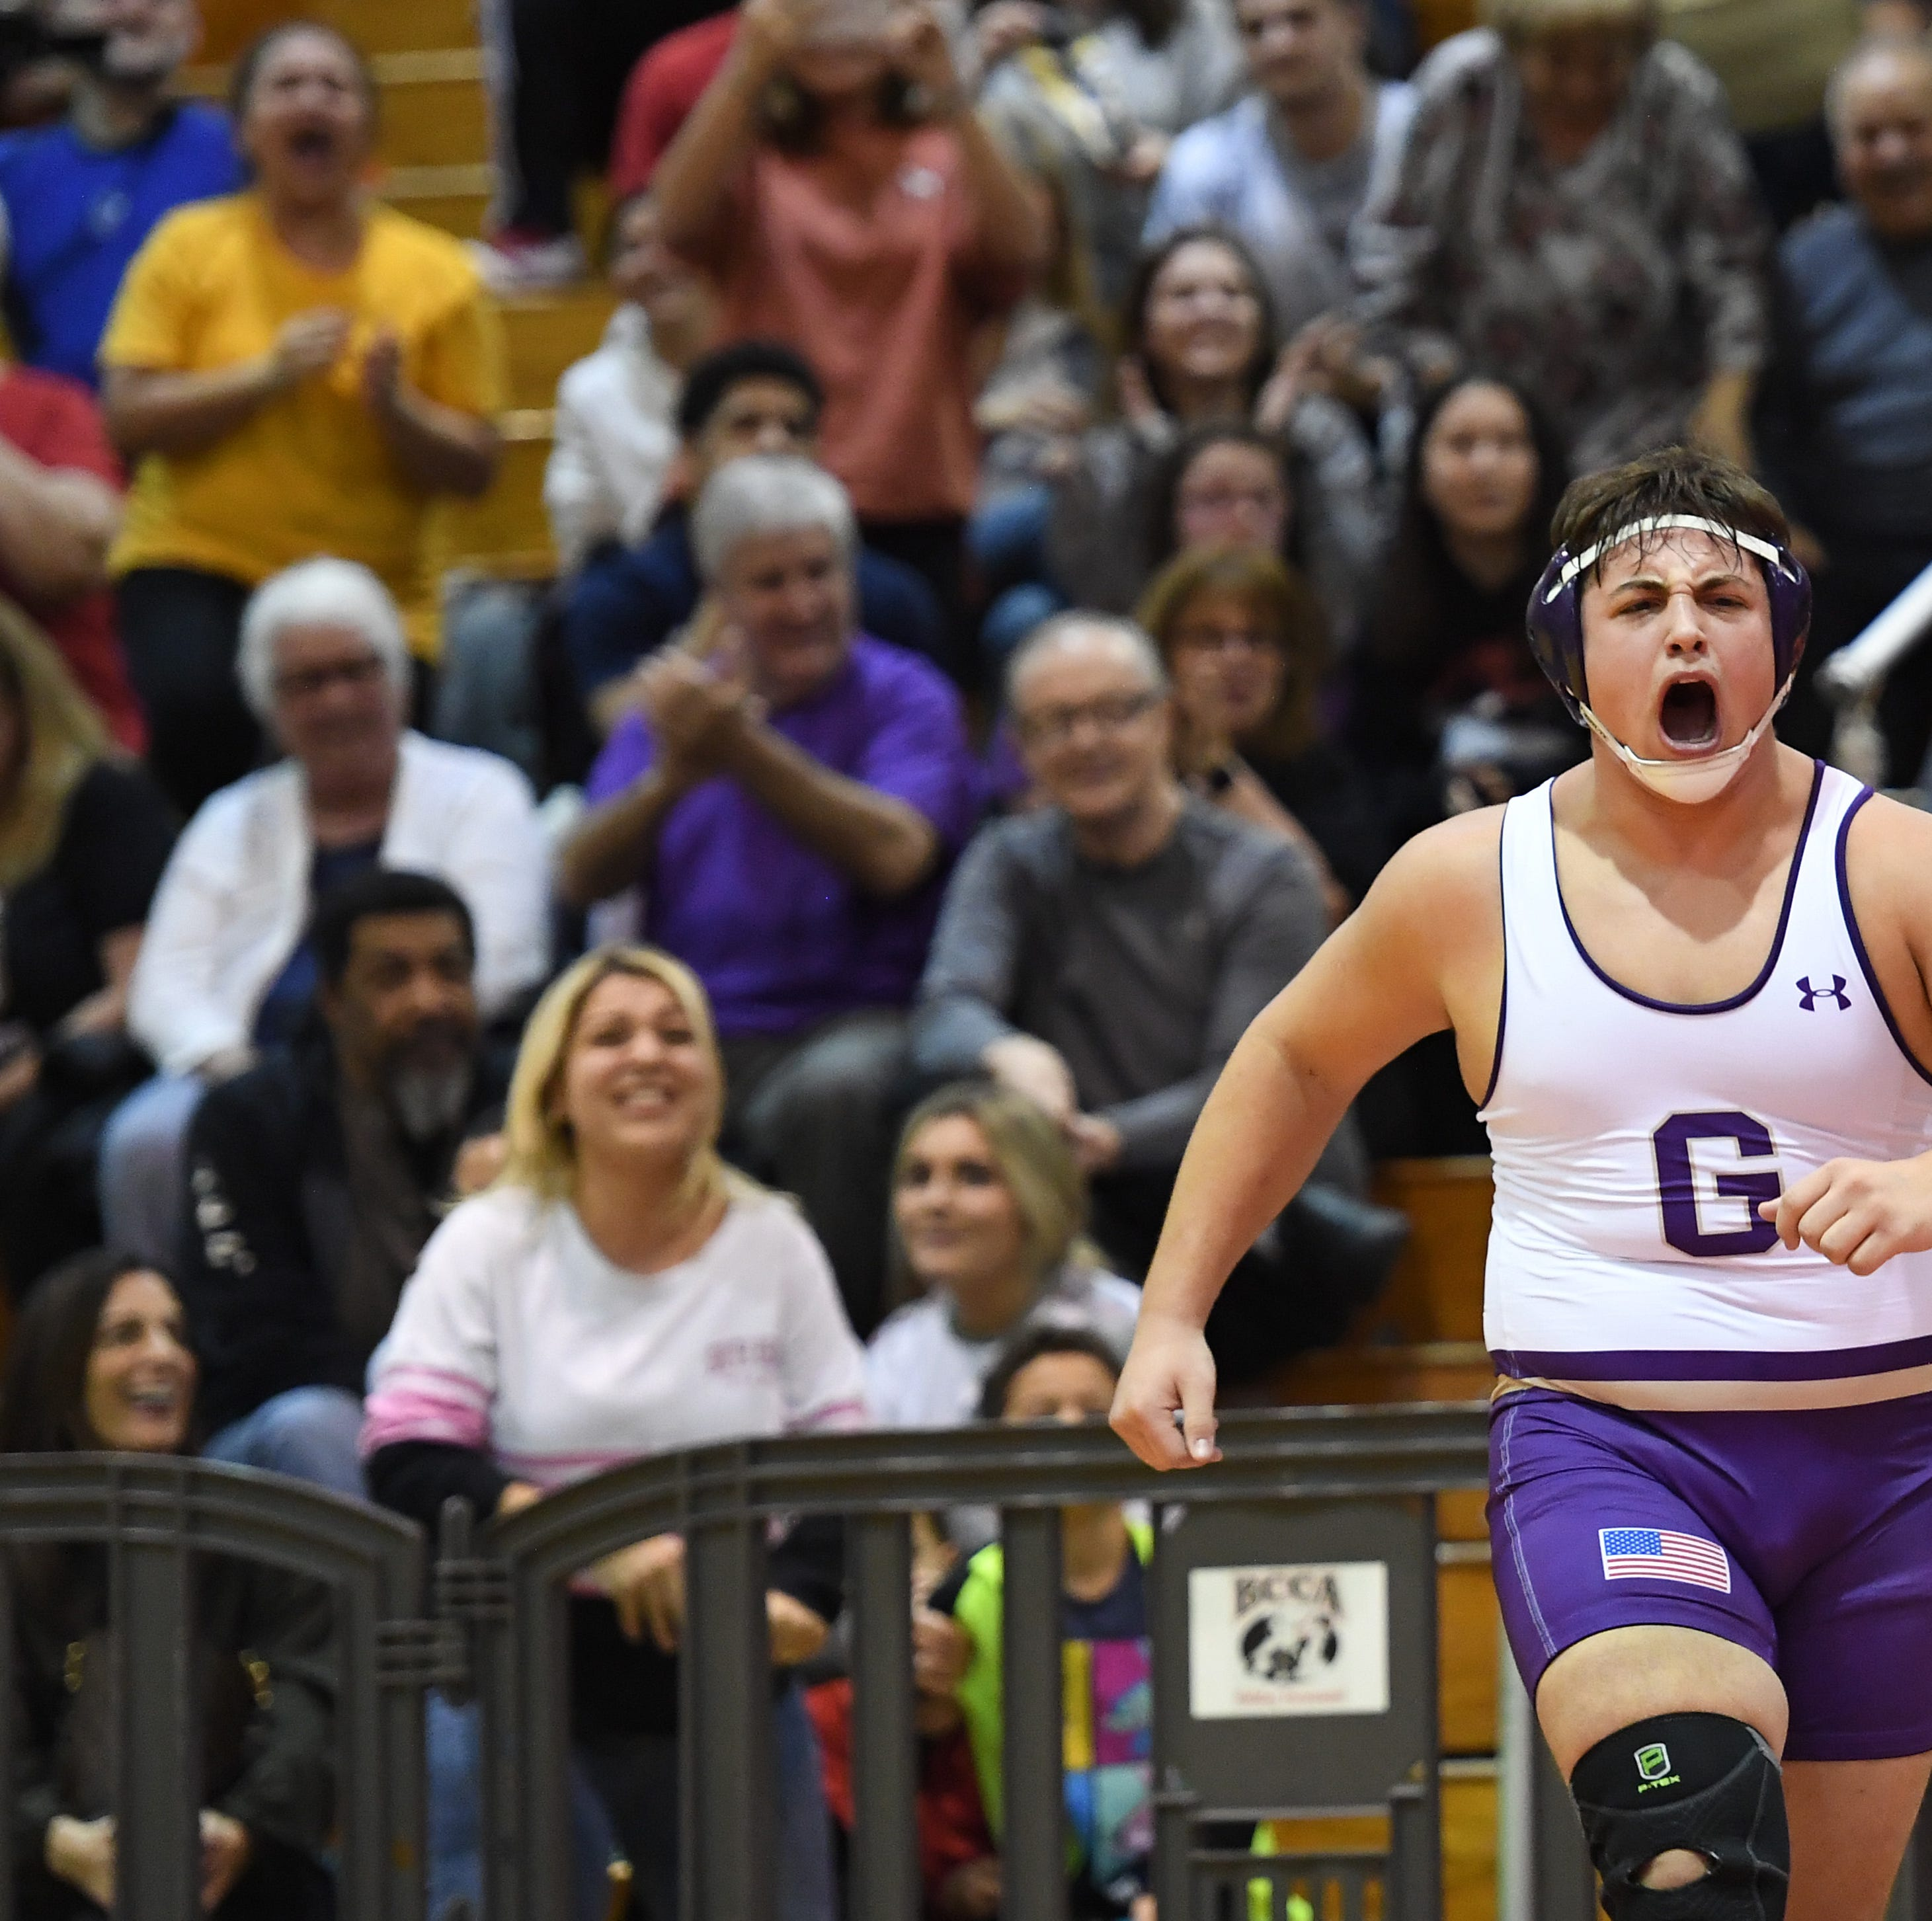 Wrestling: Three wrestlers who stood out in the first round at Region 2